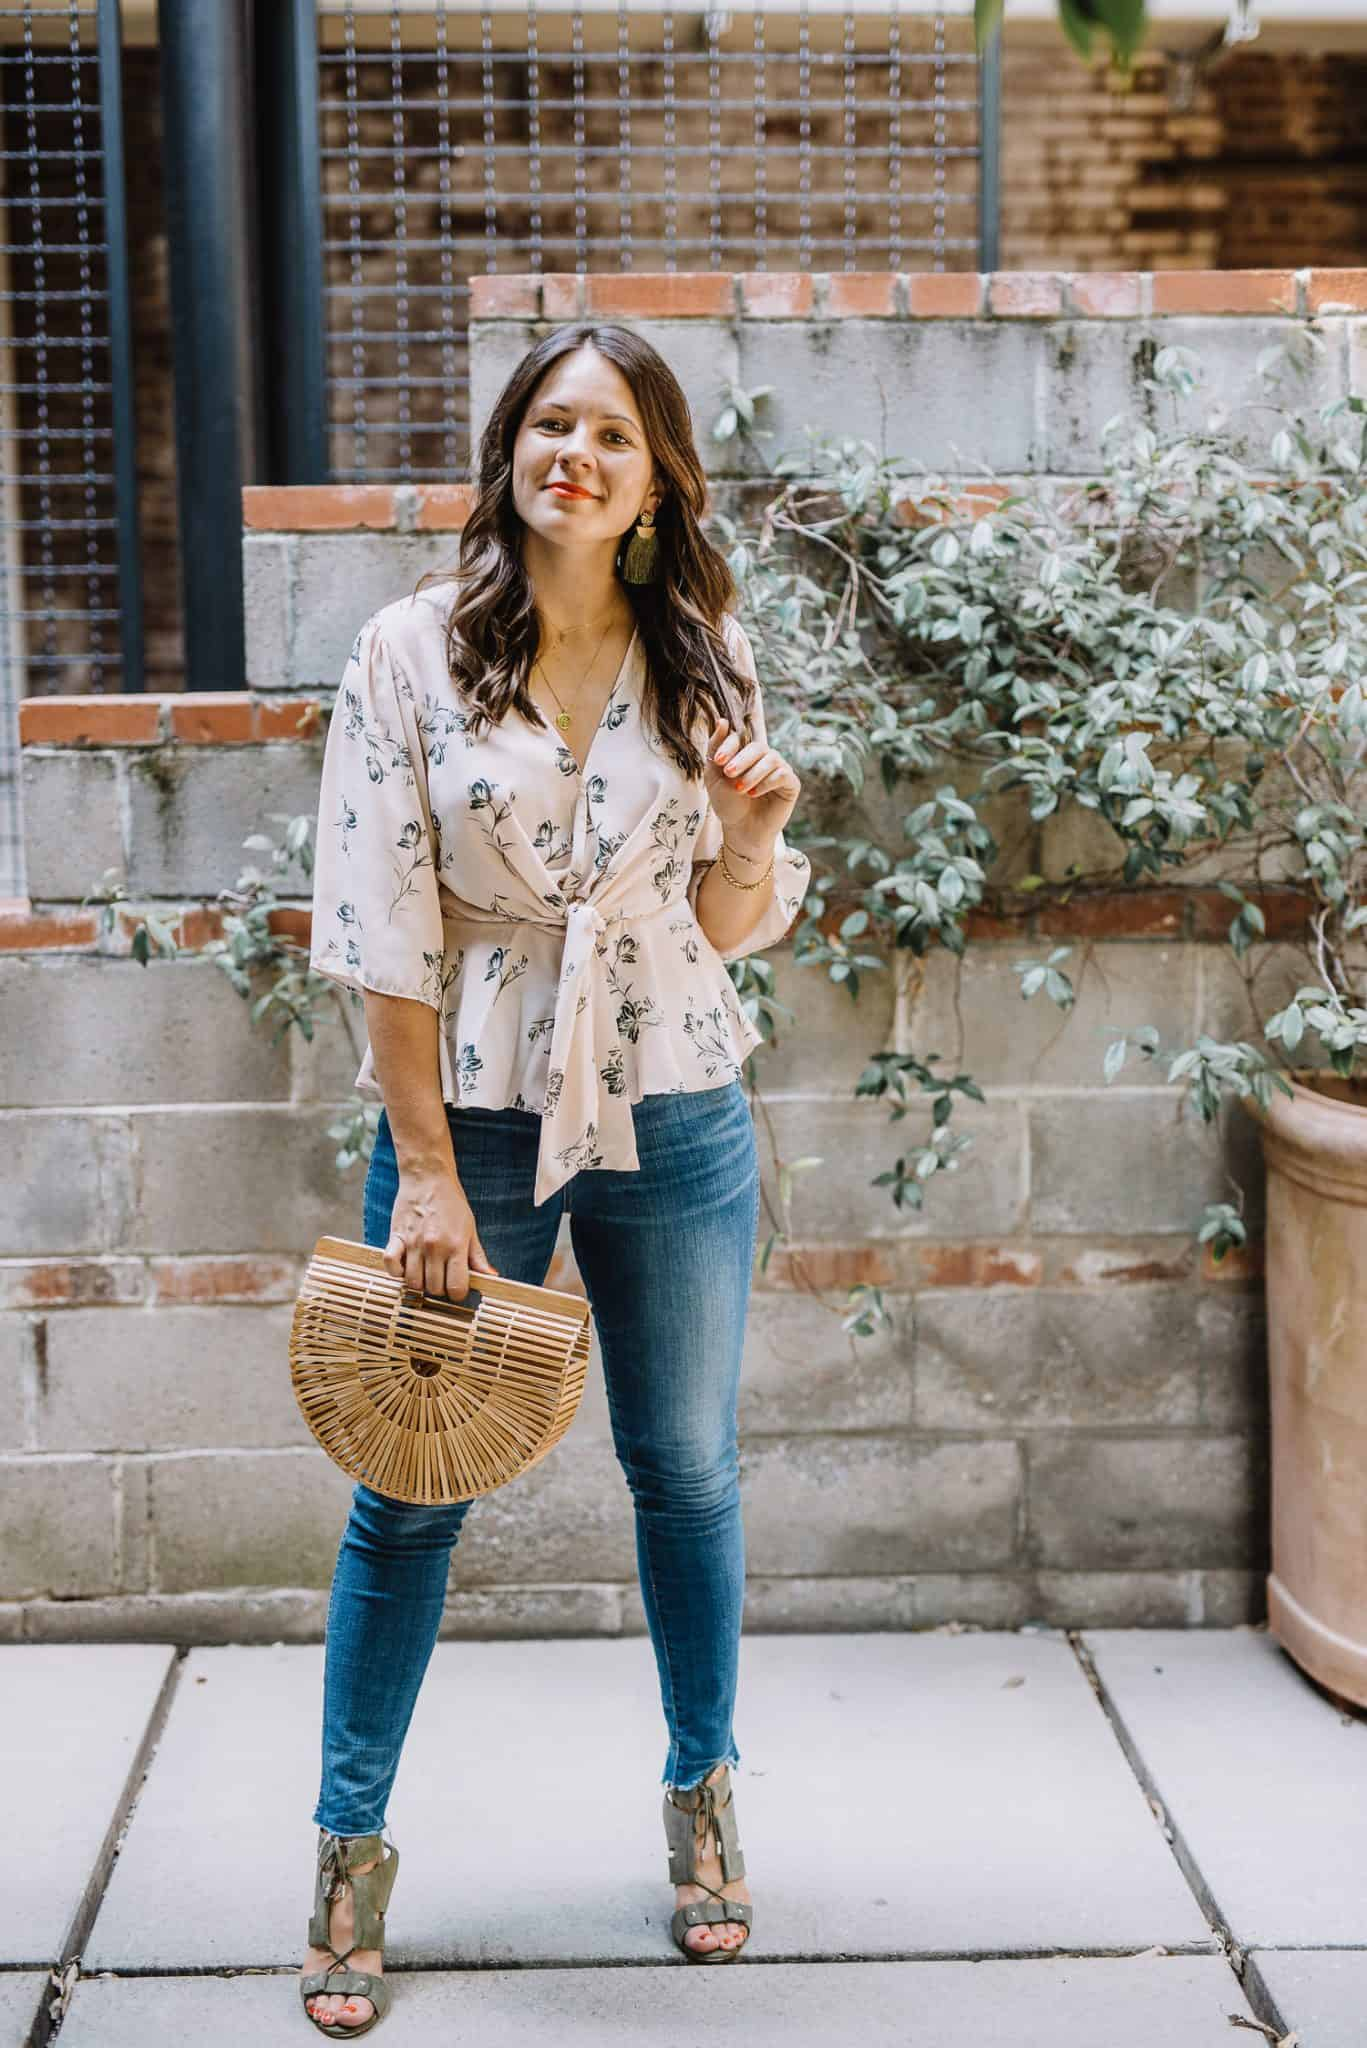 Dressing up jeans with a knotted wrap top